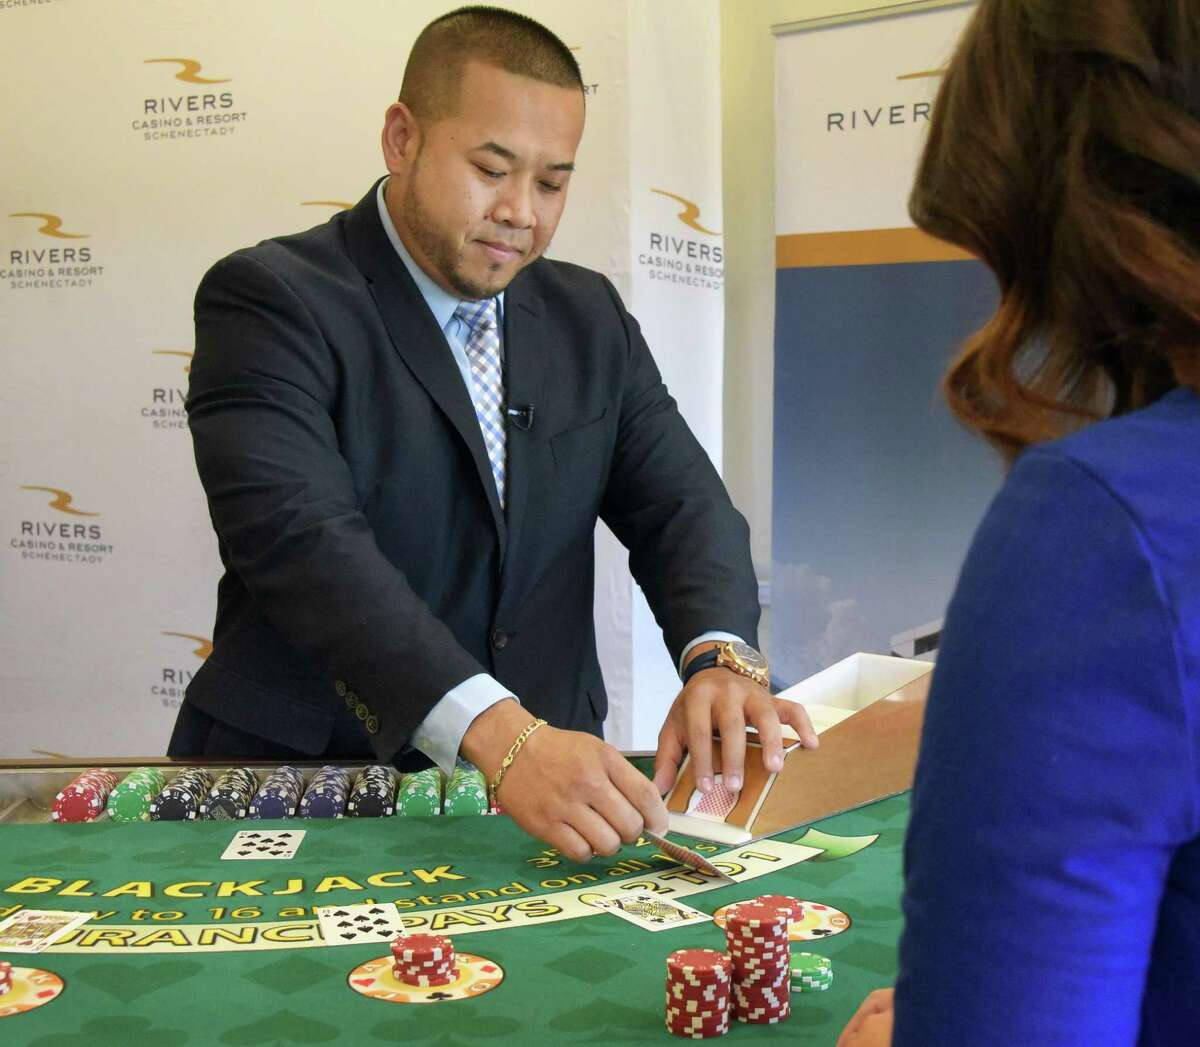 Table games shift manager David Vatthanavong deals blackjack at the Rivers Casino's dealer school during a news conference Thursday Sept. 15, 2016 in Schenectady, NY. (John Carl D'Annibale / Times Union)